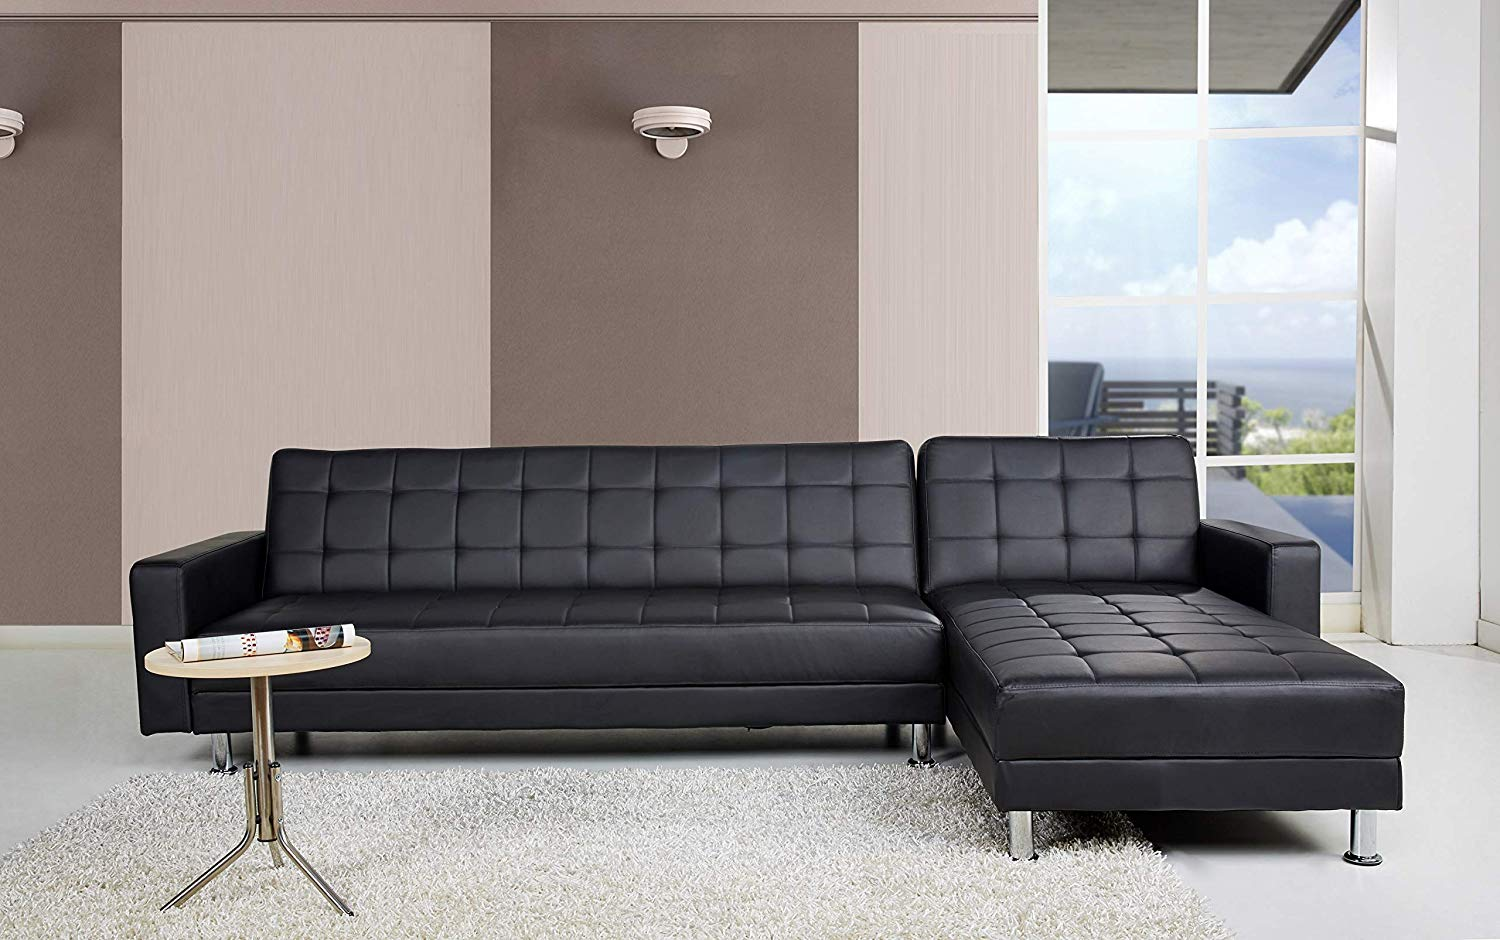 Tufted Leather Sectional Sleeper Sofa